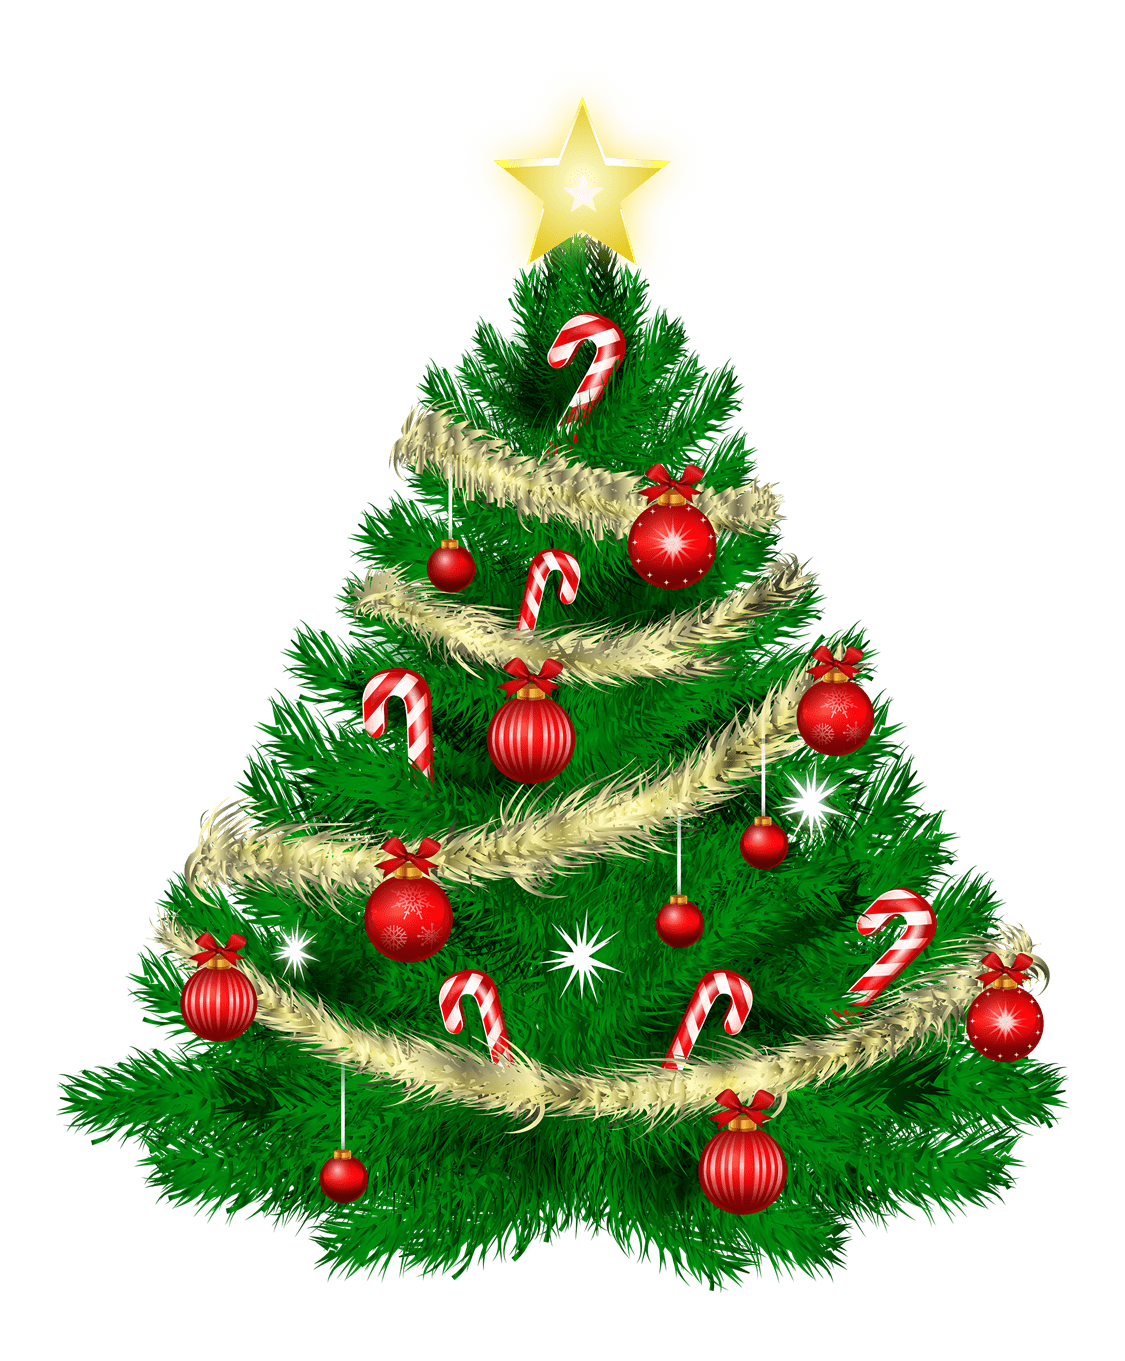 Christmas Tree Png Images.1509724505cartoon Christmas Tree Png Transparent Image The